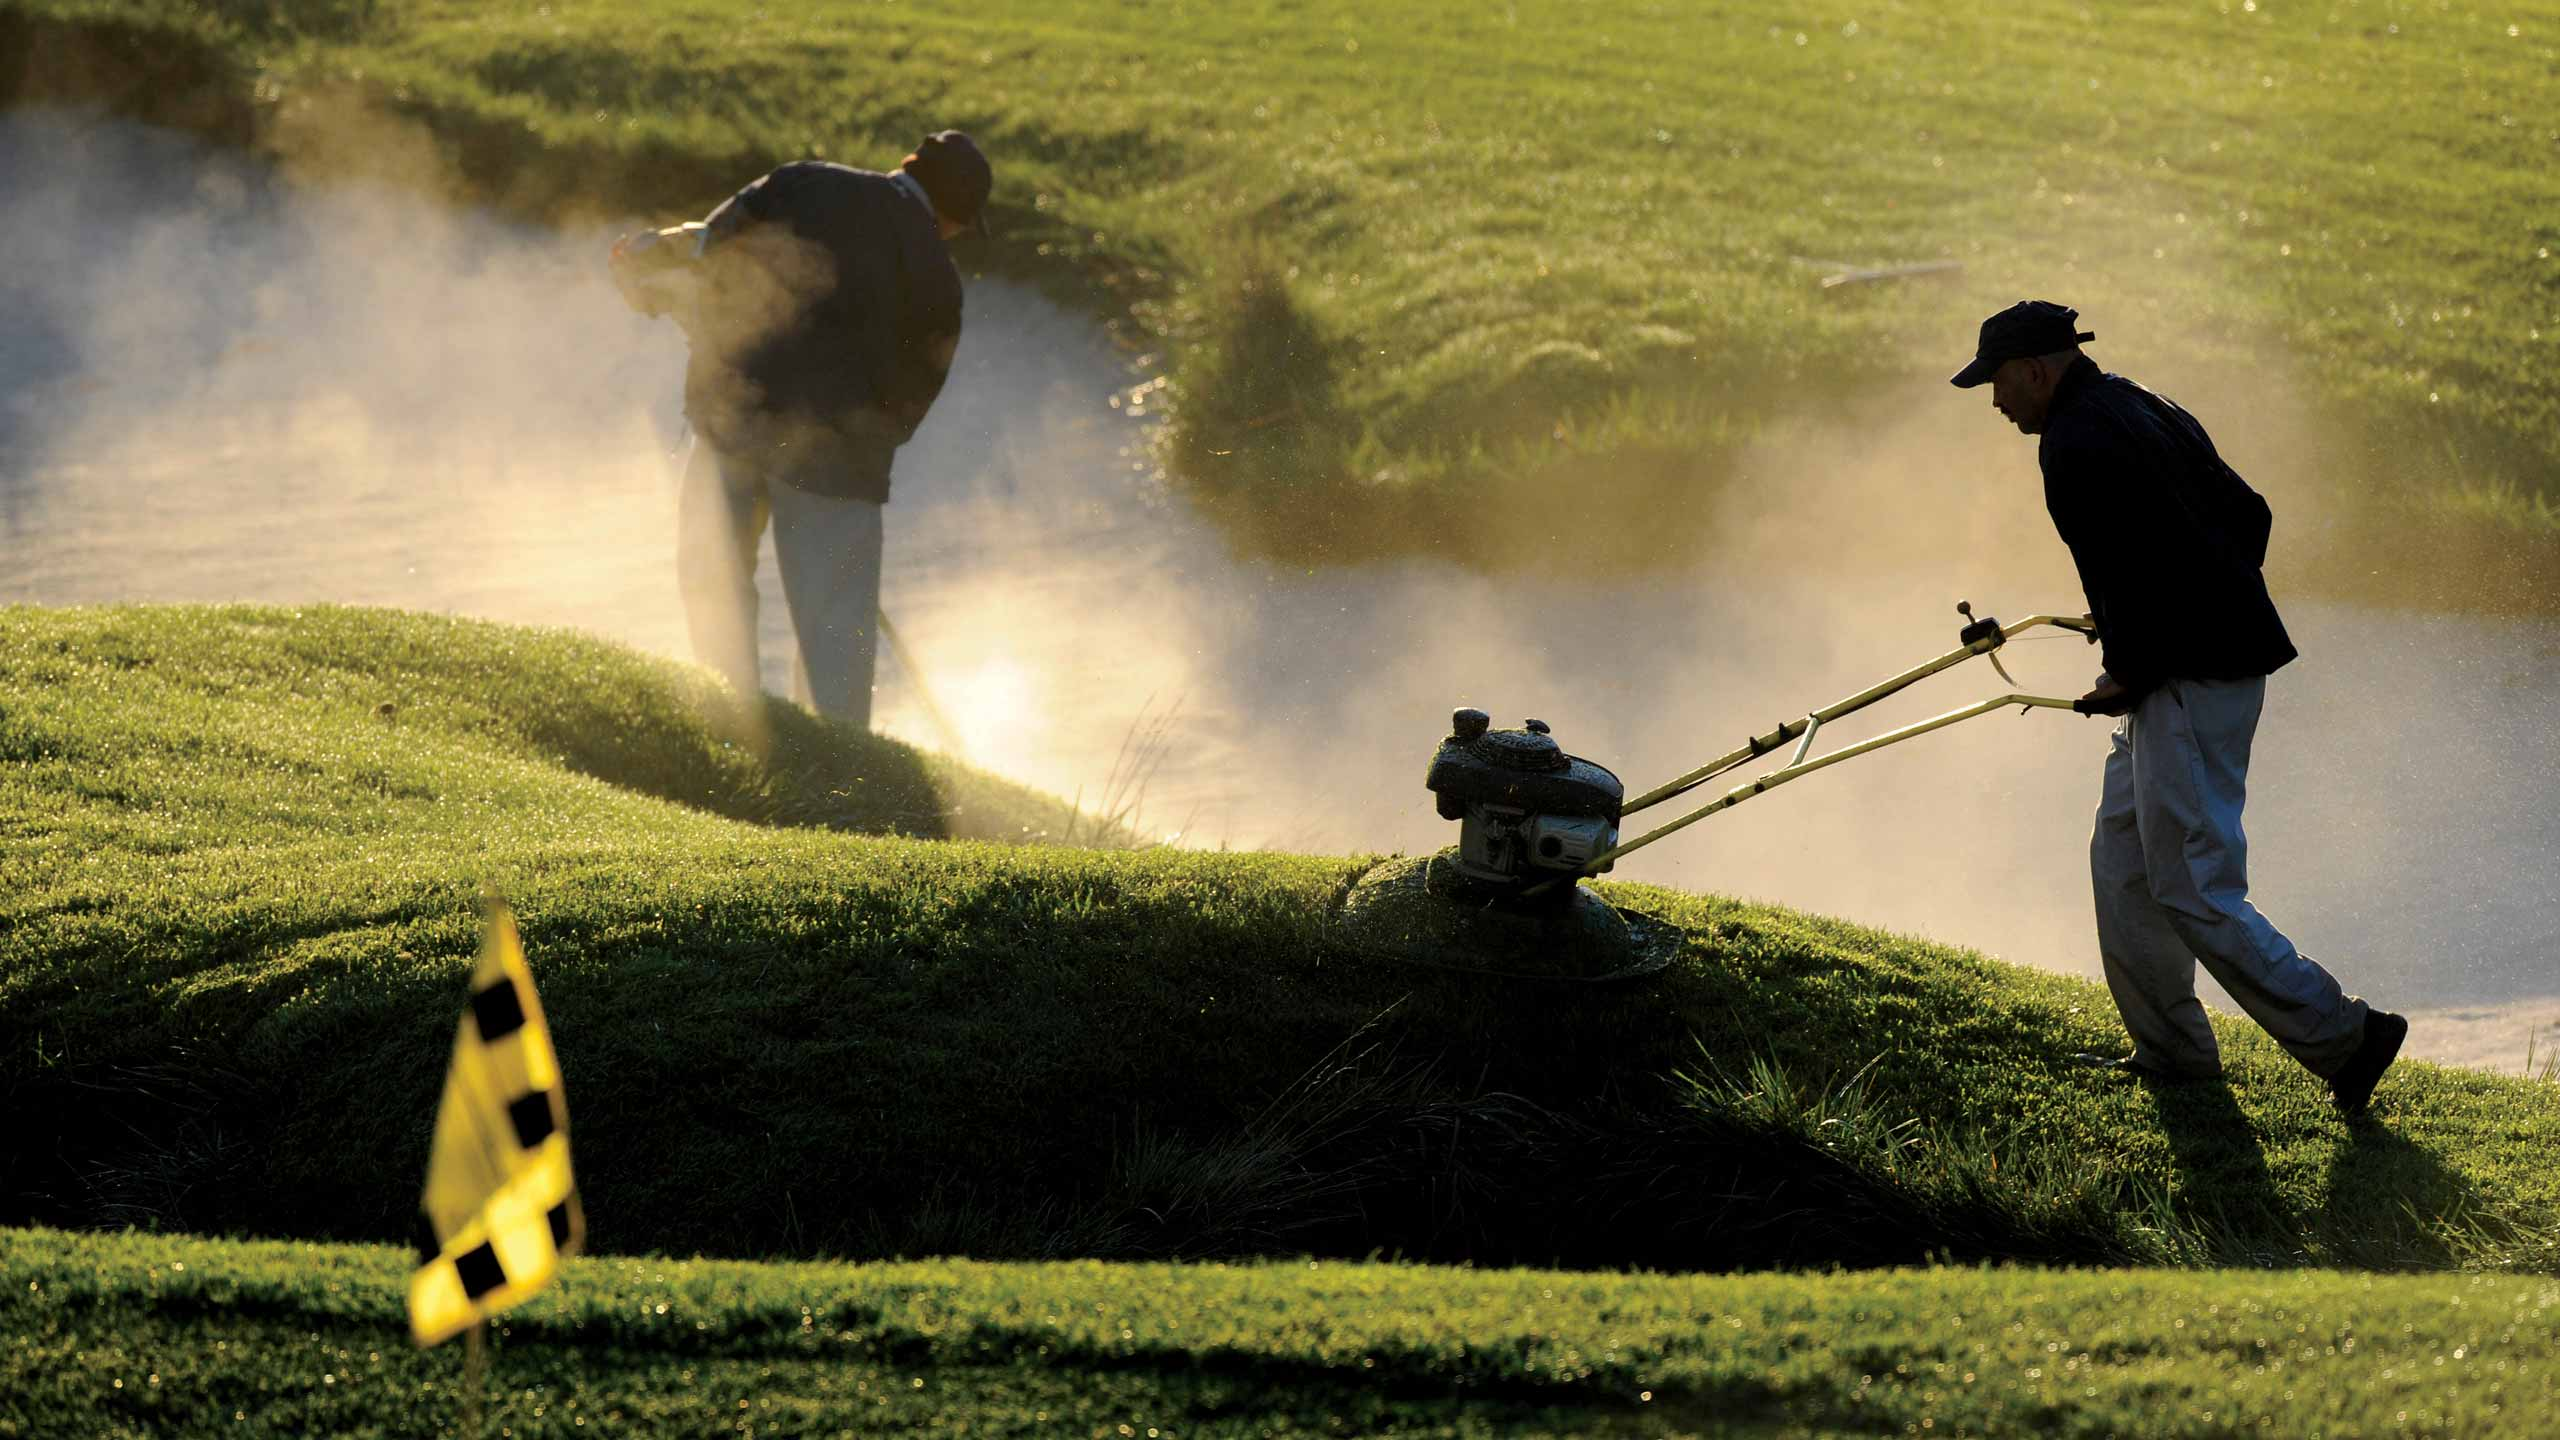 Golf course maintenance workers